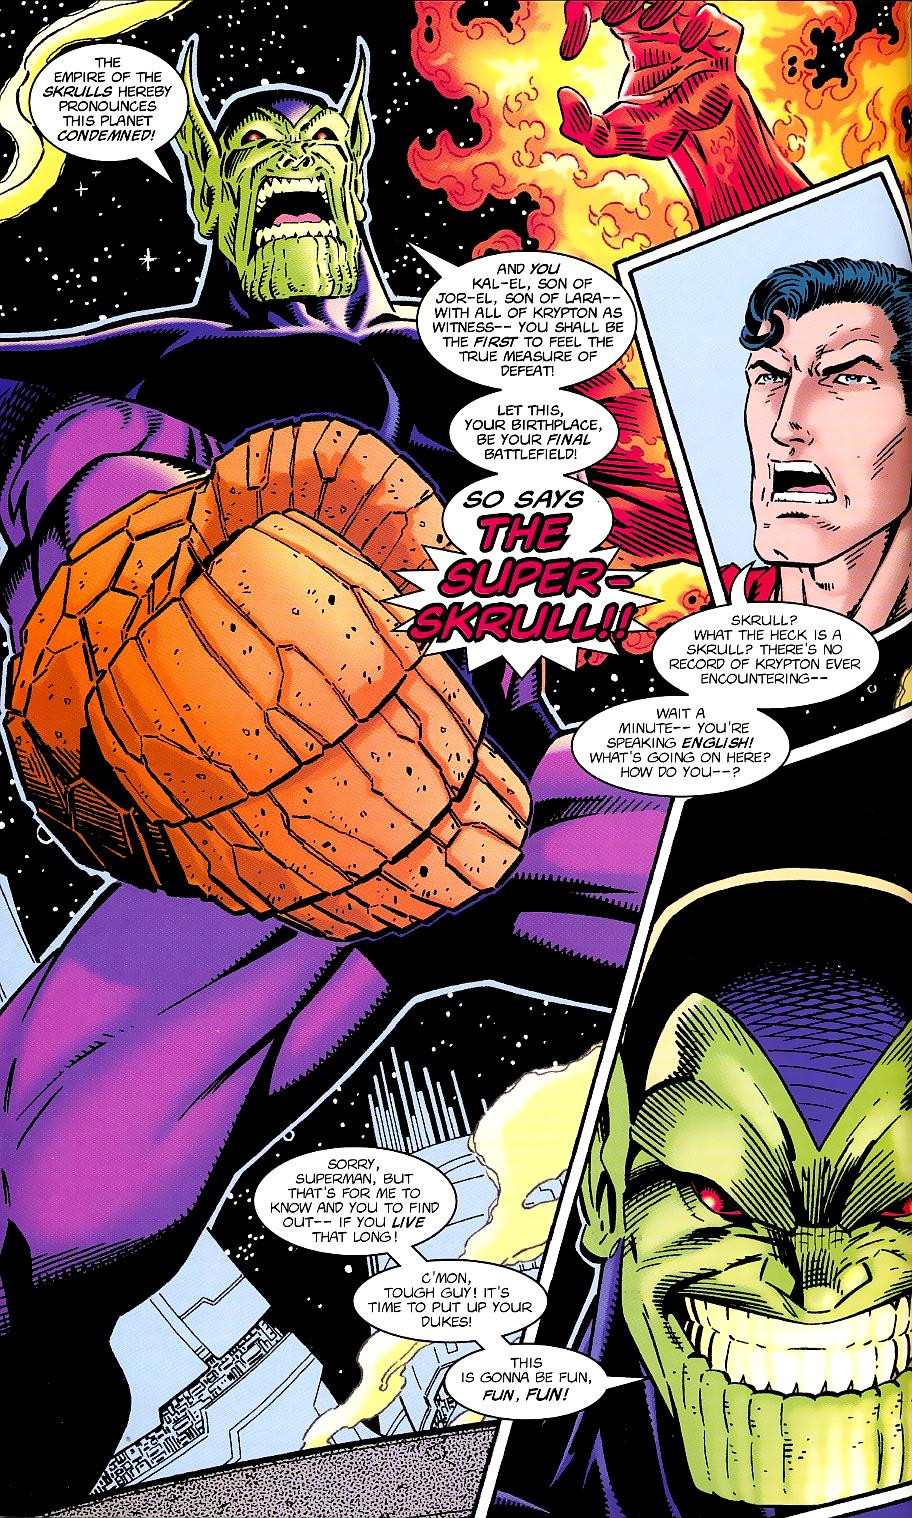 Read online Silver Surfer/Superman comic -  Issue # Full - 12